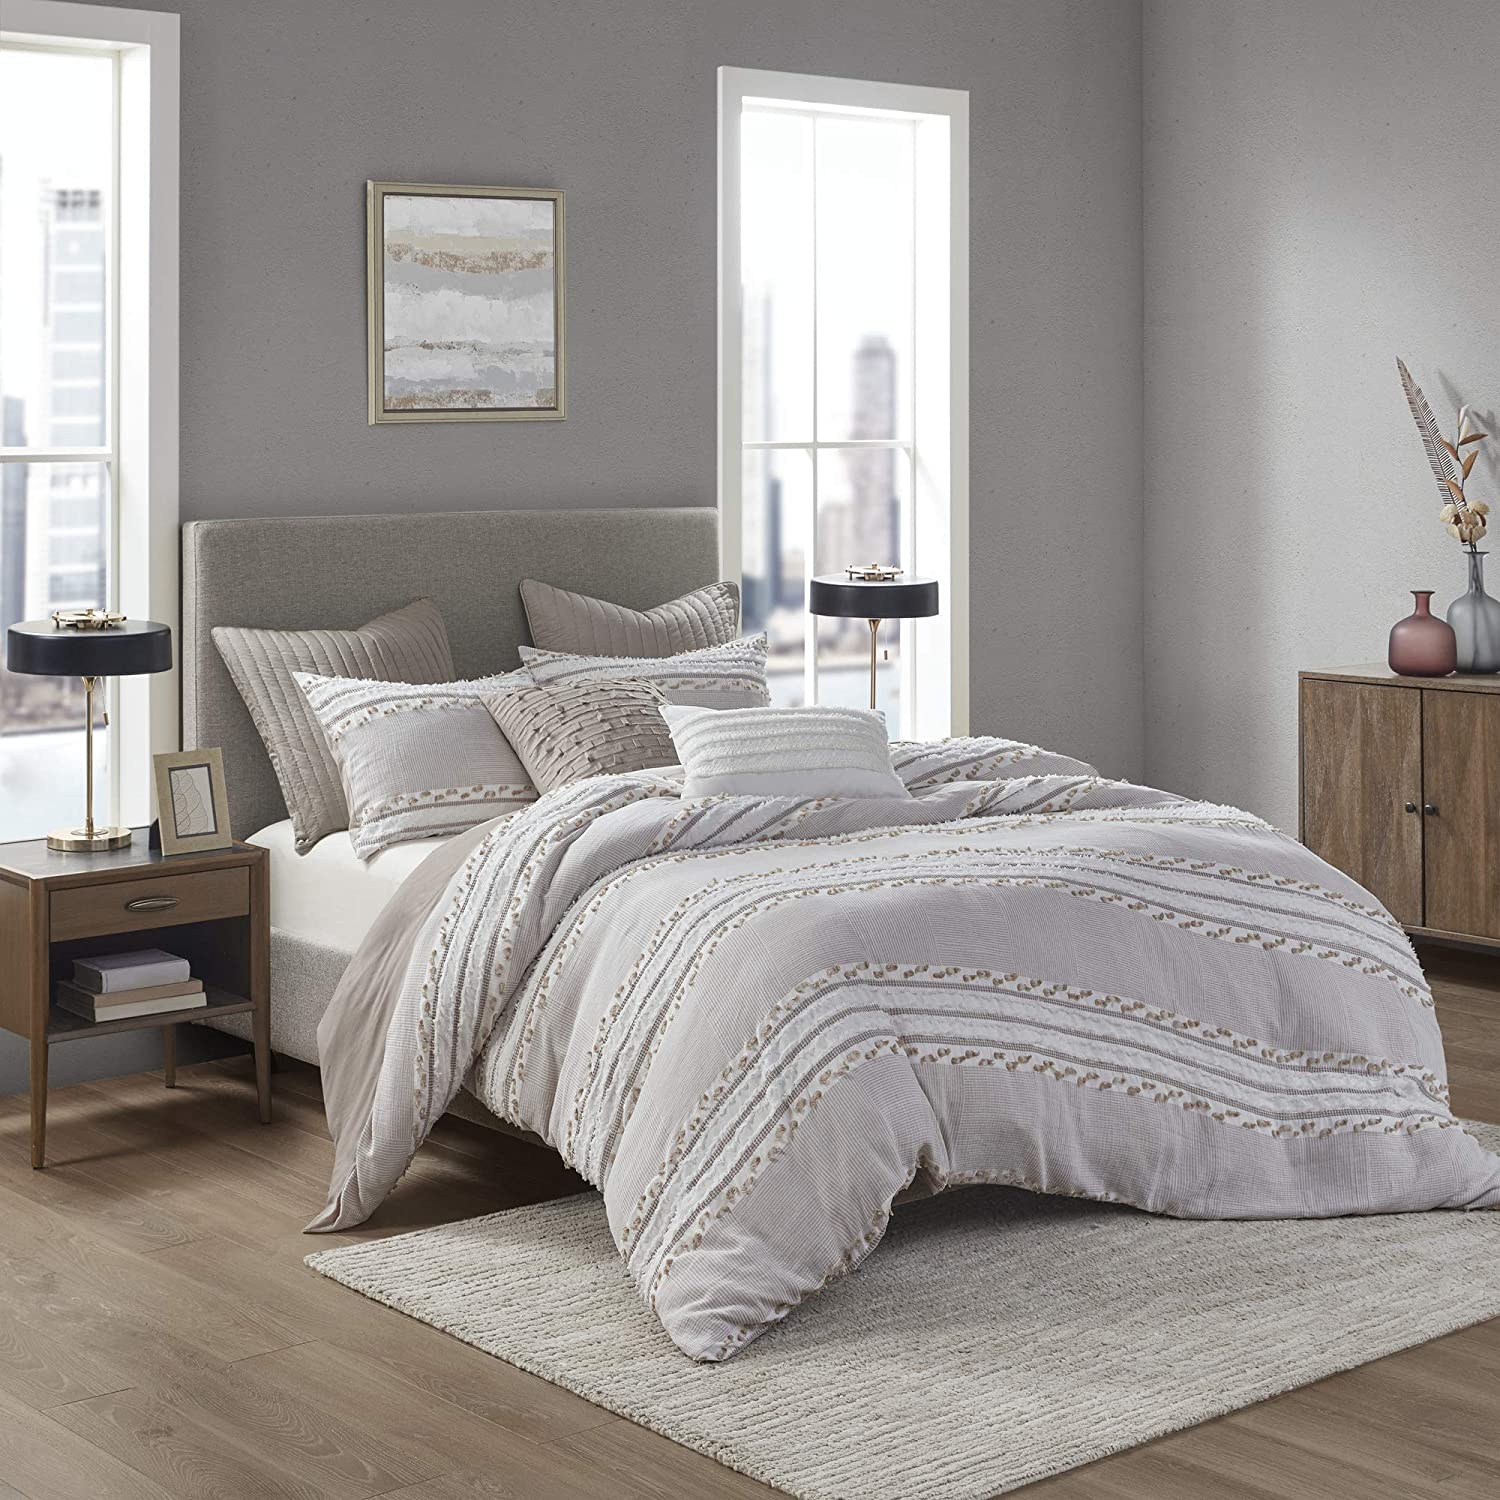 INK+IVY 100% Organic Cotton Comforter Popular product Jacquard Trendy Stripe Set Sales of SALE items from new works